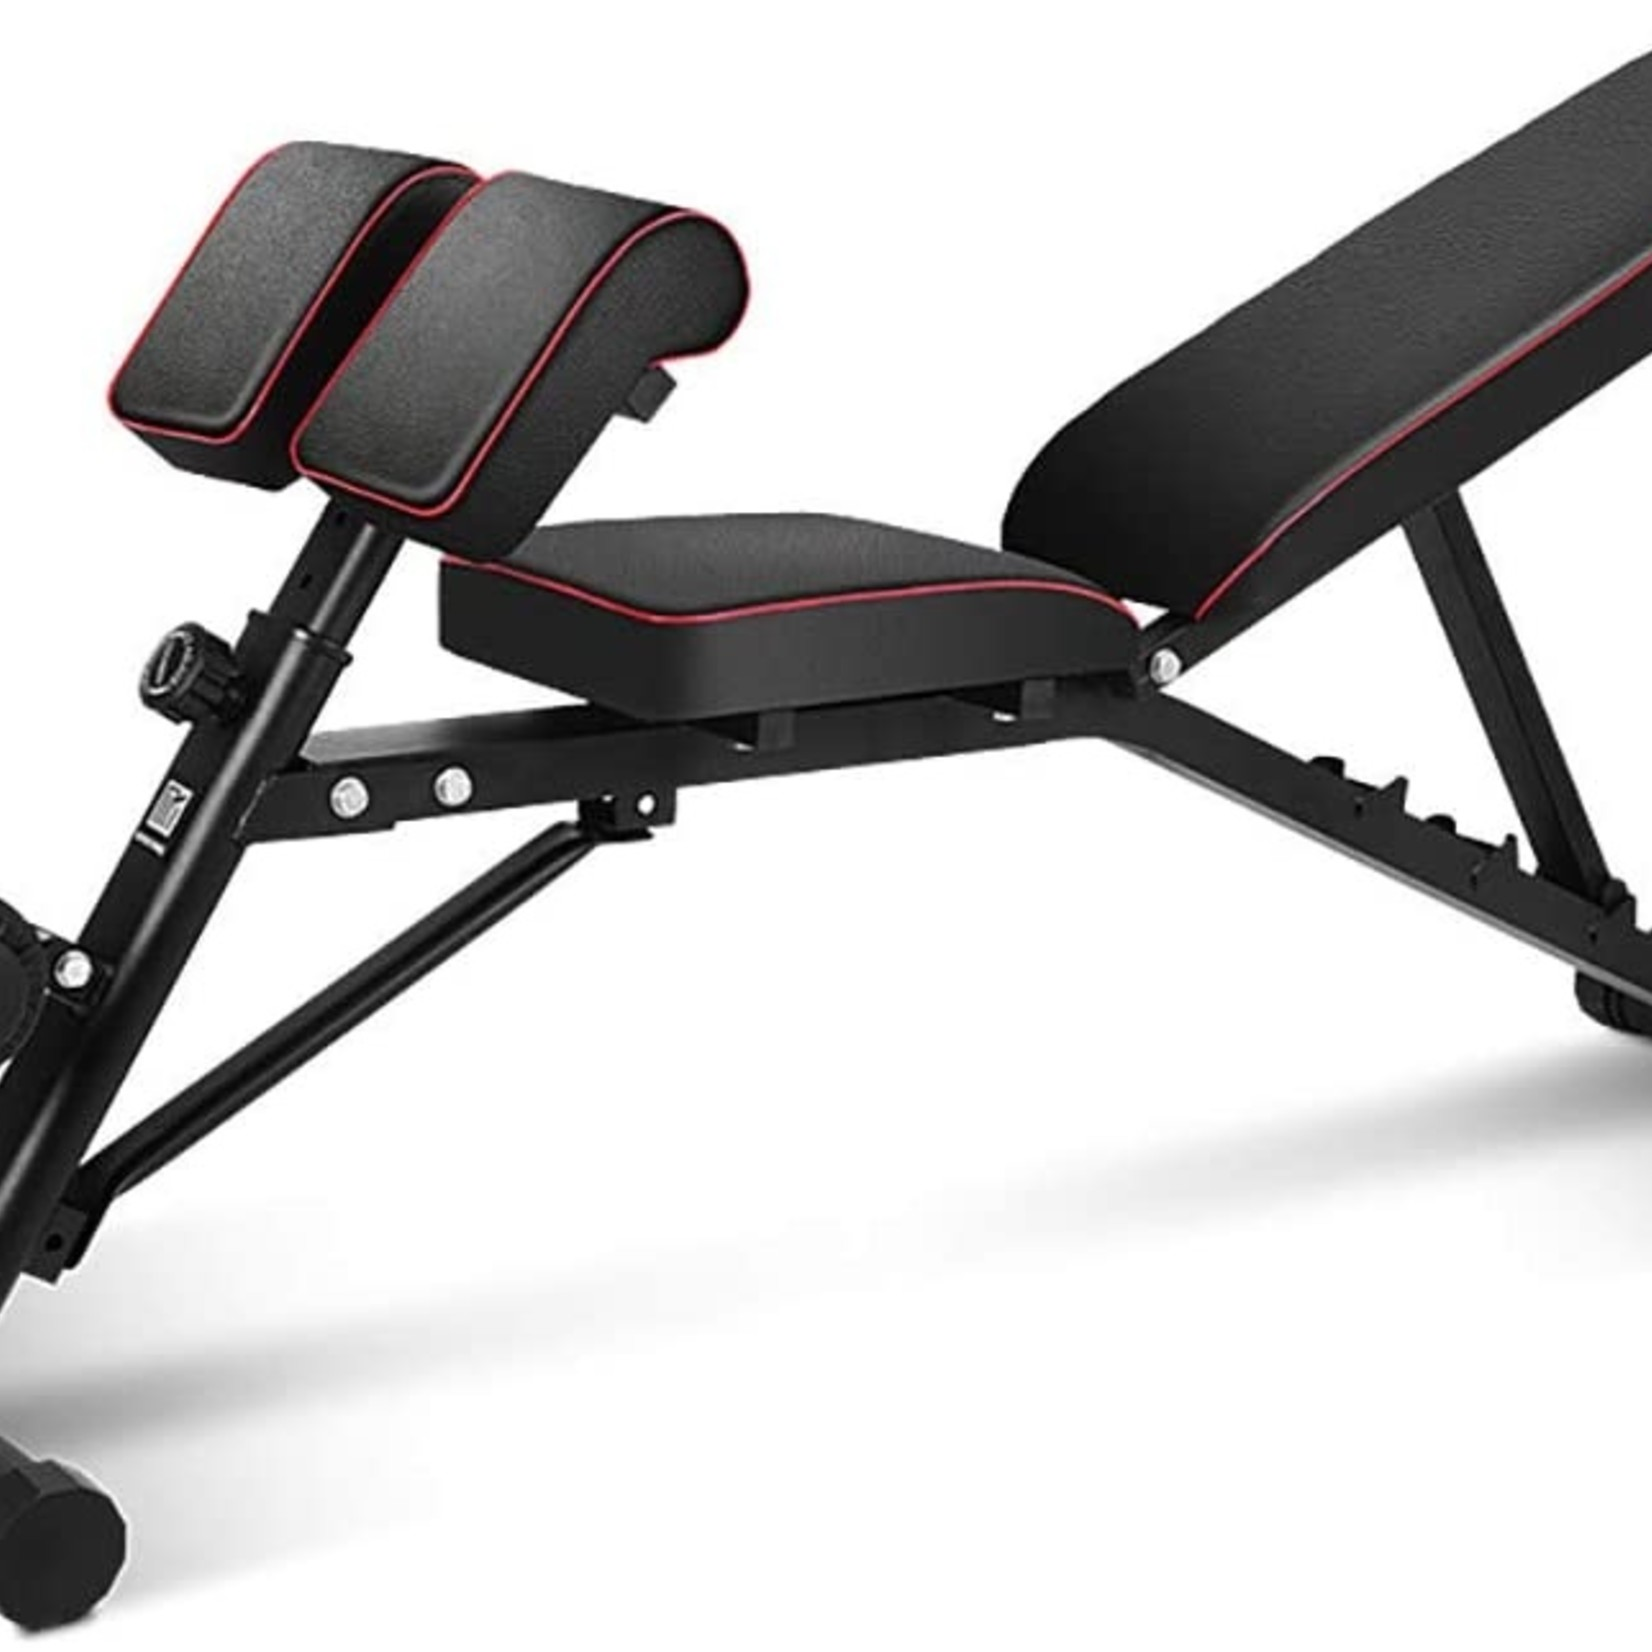 SogeHome Adjustable Bench Multi-Purpose Work Out